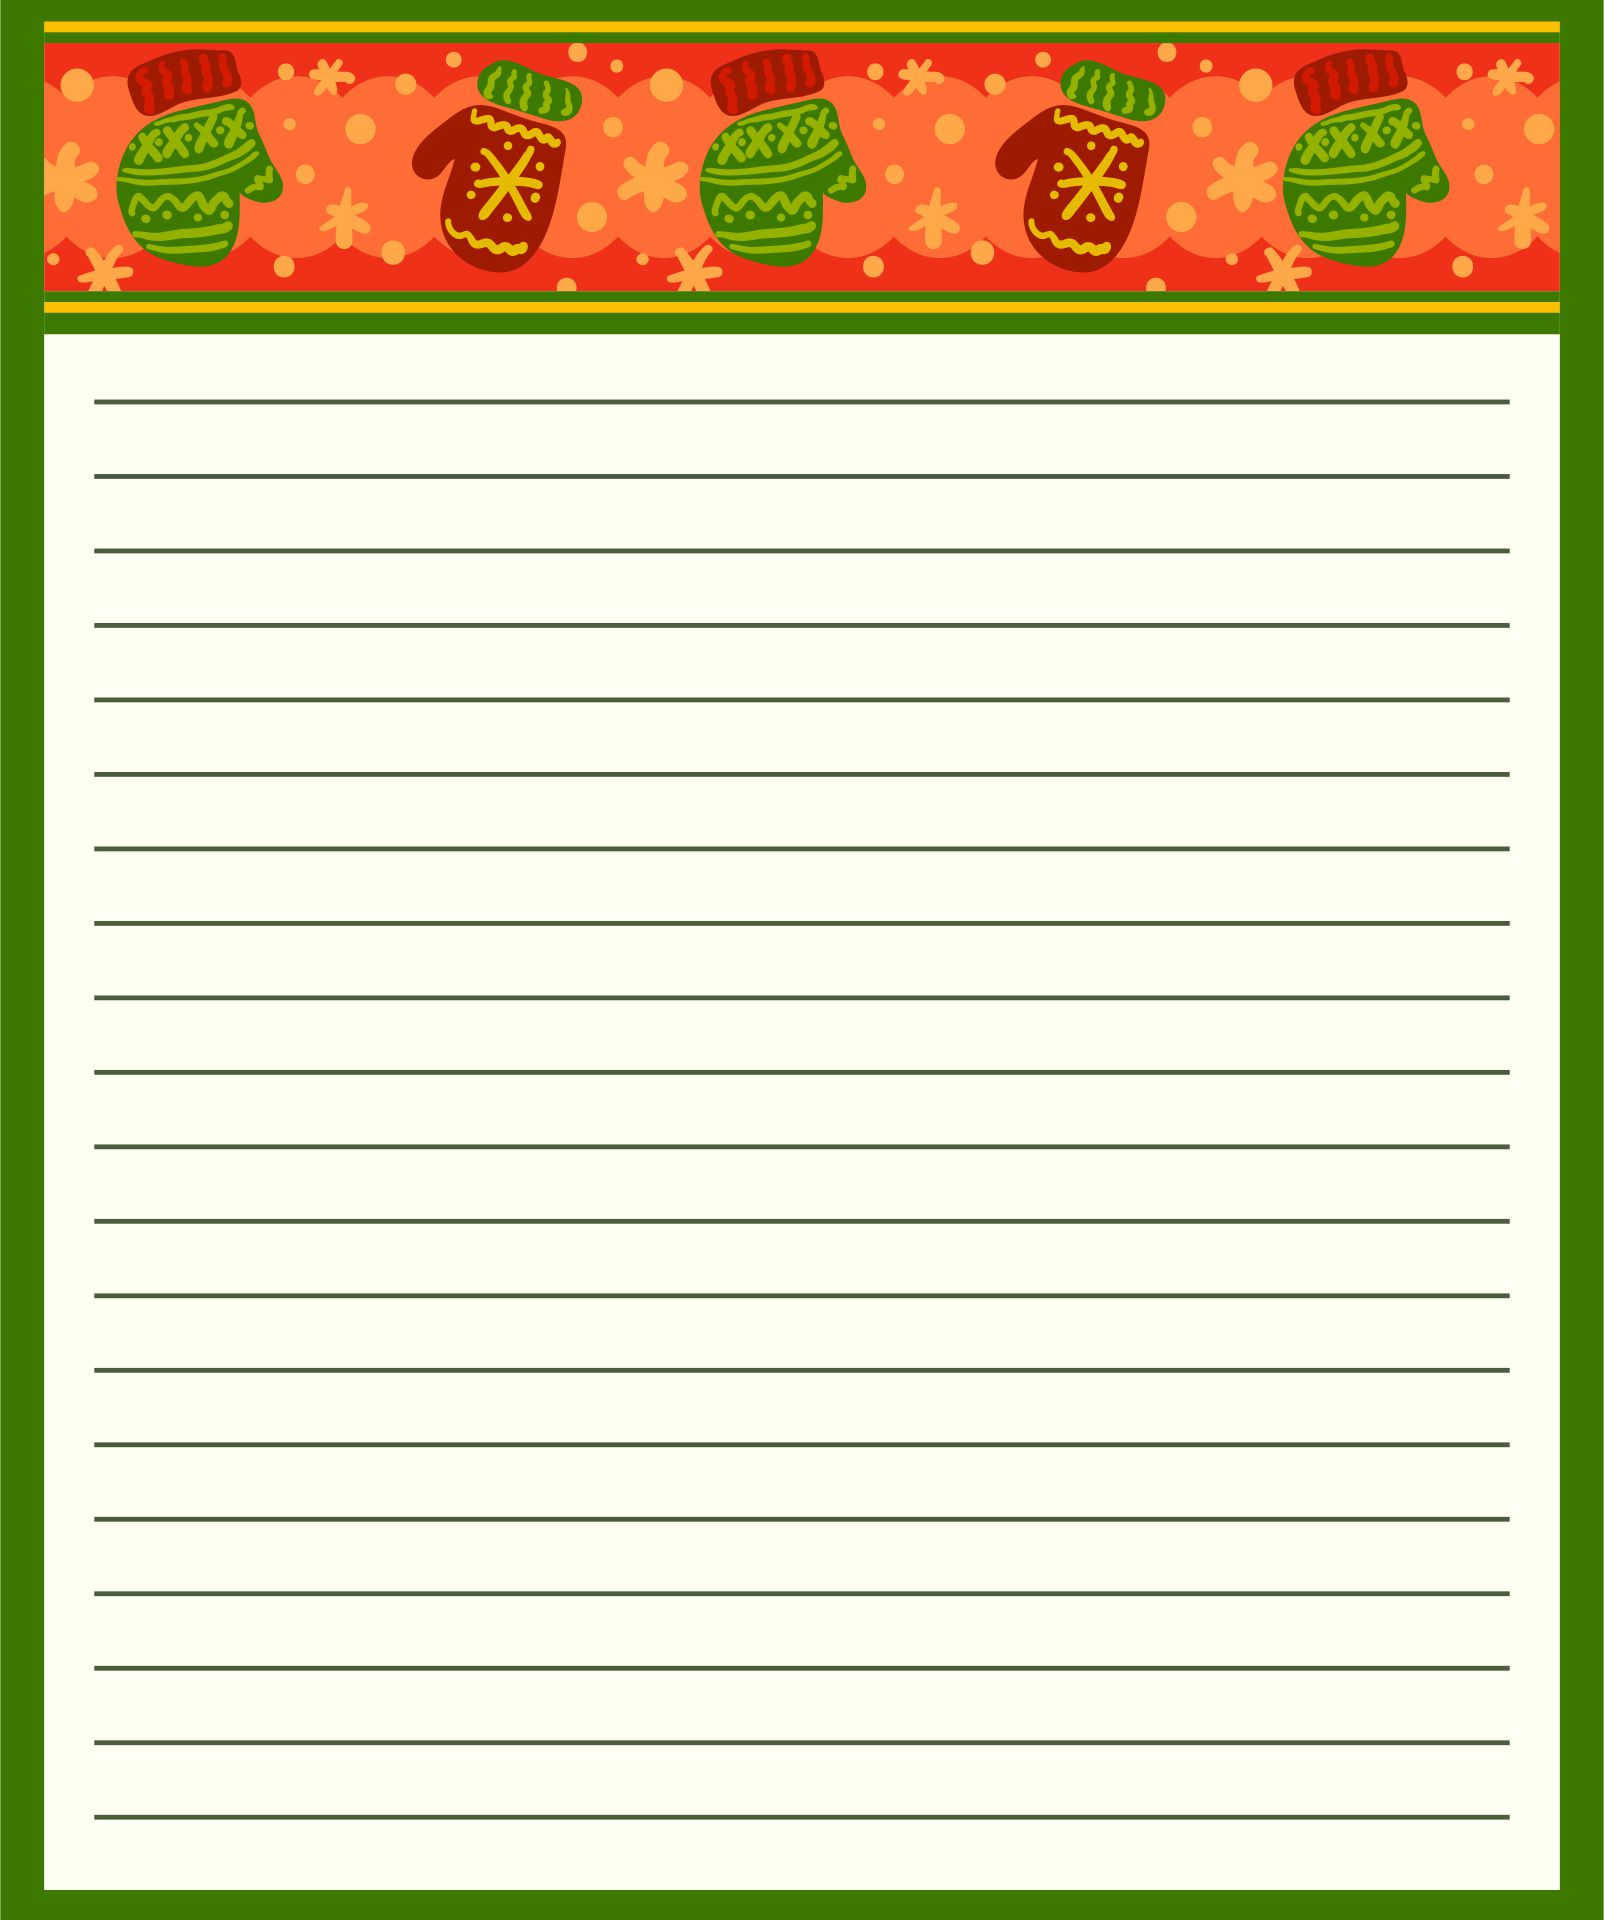 photo regarding Free Printable Christmas Borders called Xmas Producing Paper With Border Enjoyment and match